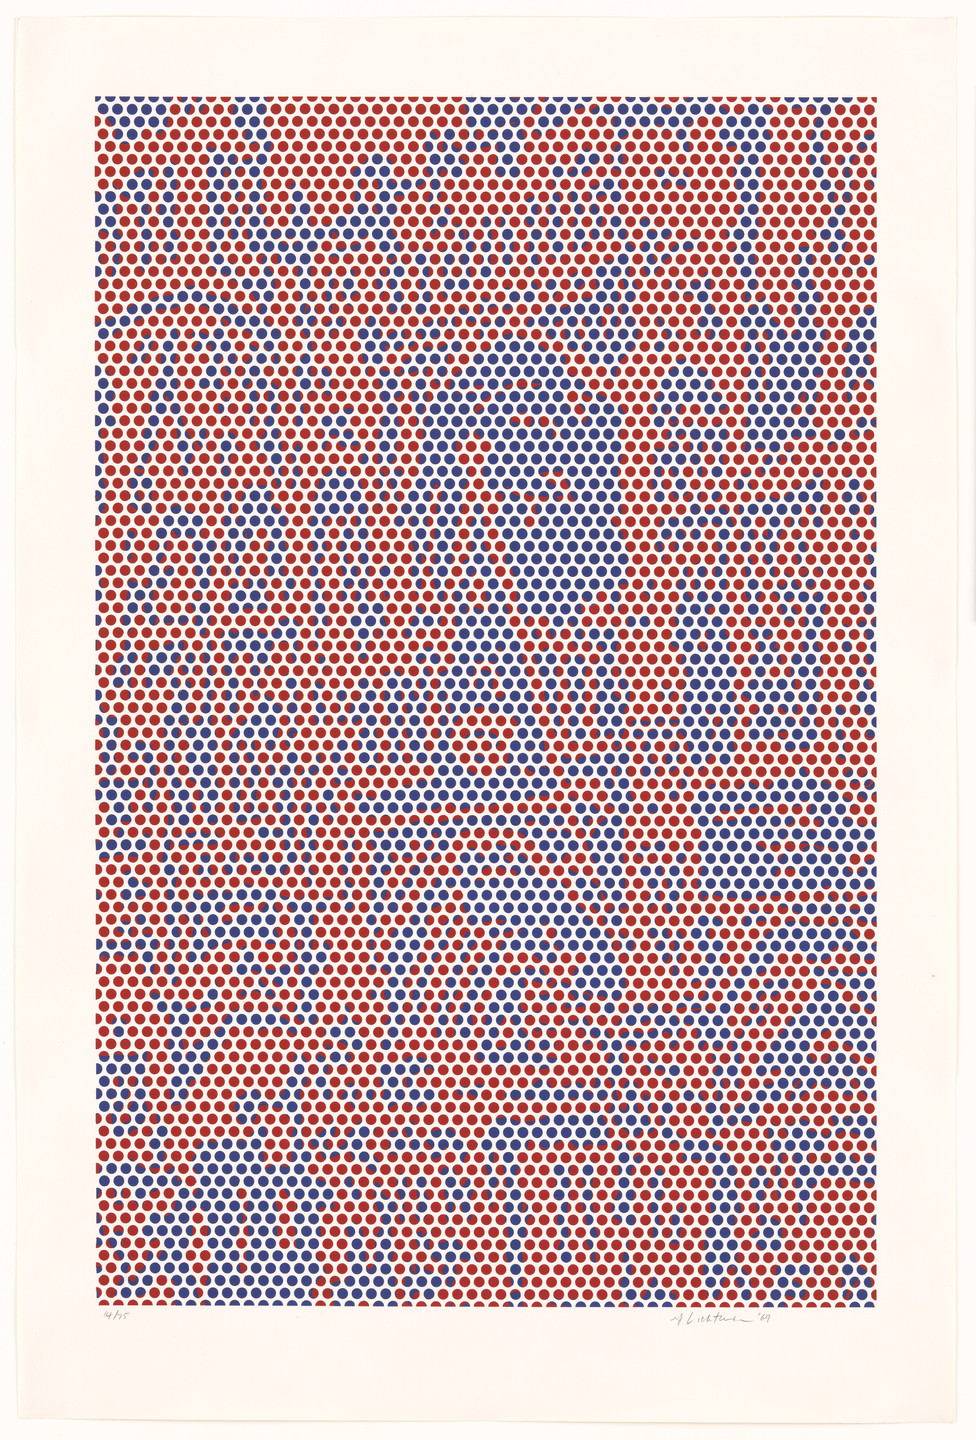 Roy Lichtenstein. Cathedral #2 from Cathedral Series. 1969